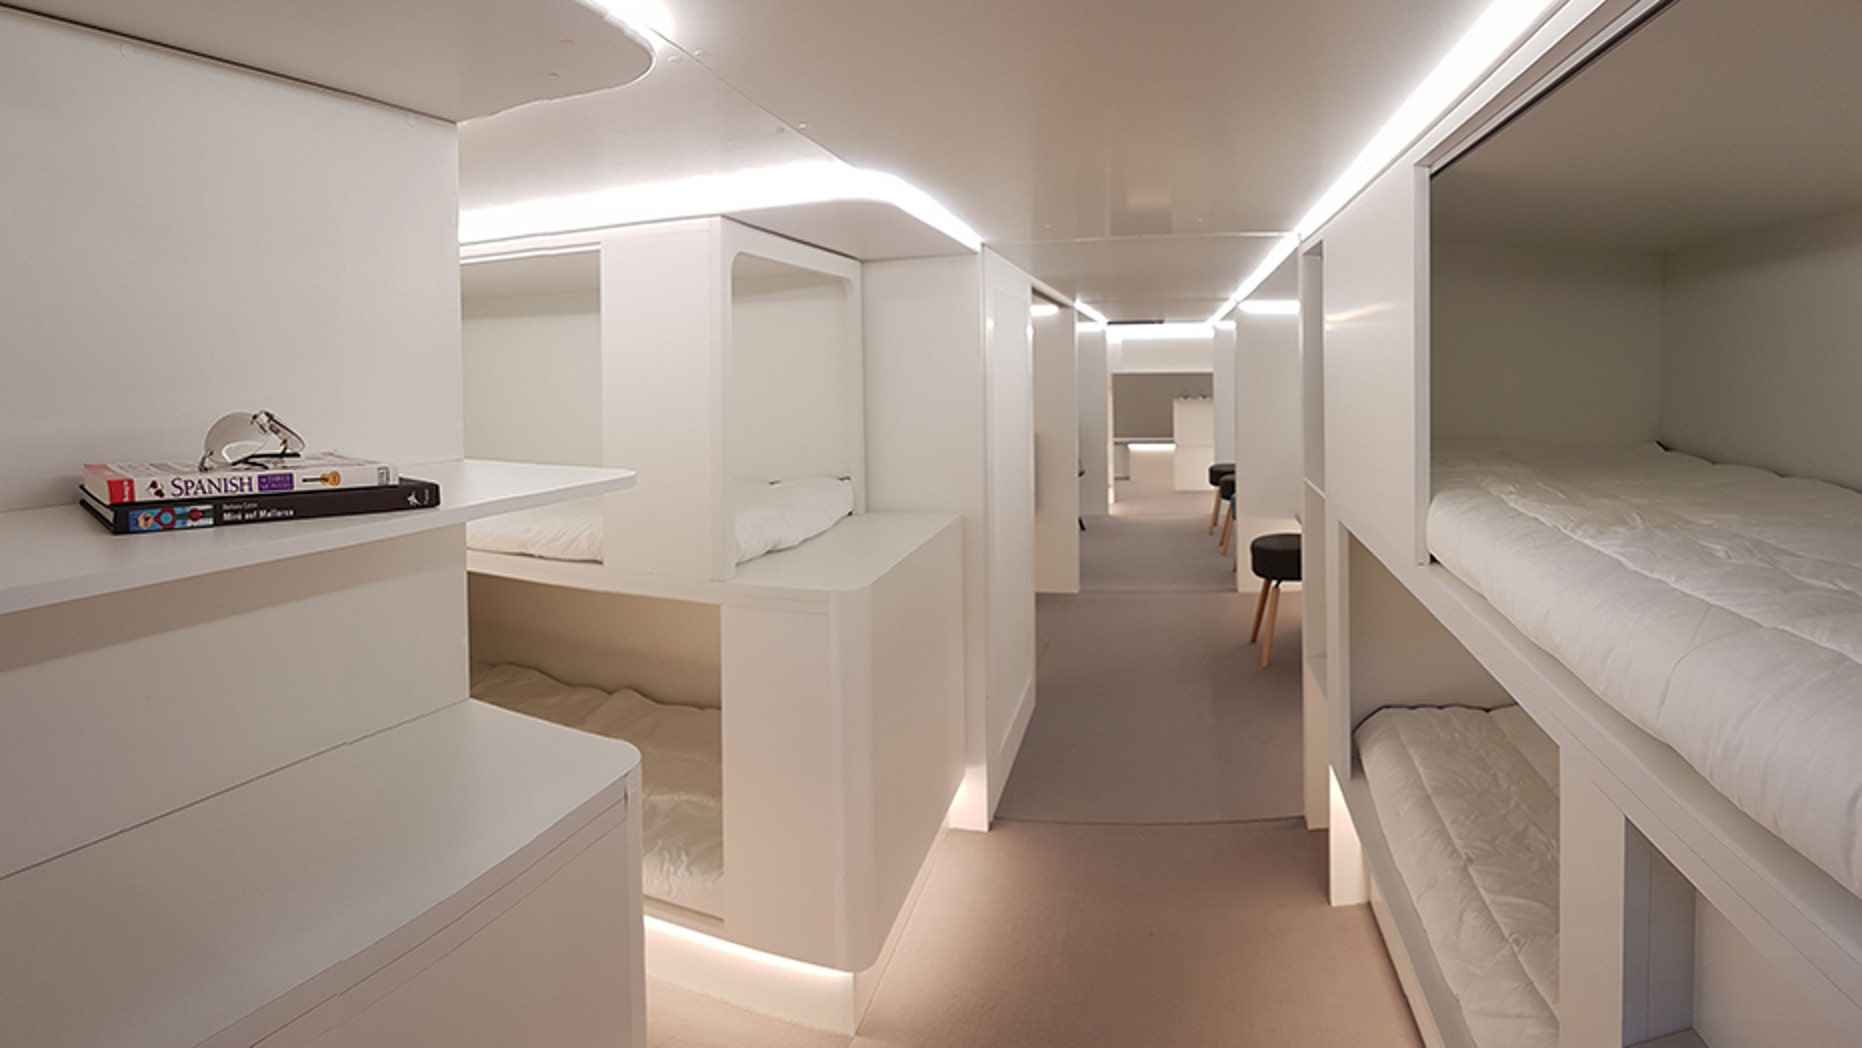 Airbus has teamed up with Zodiac Aerospace to design sleeper berths for airplane lower-deck cargo areas.